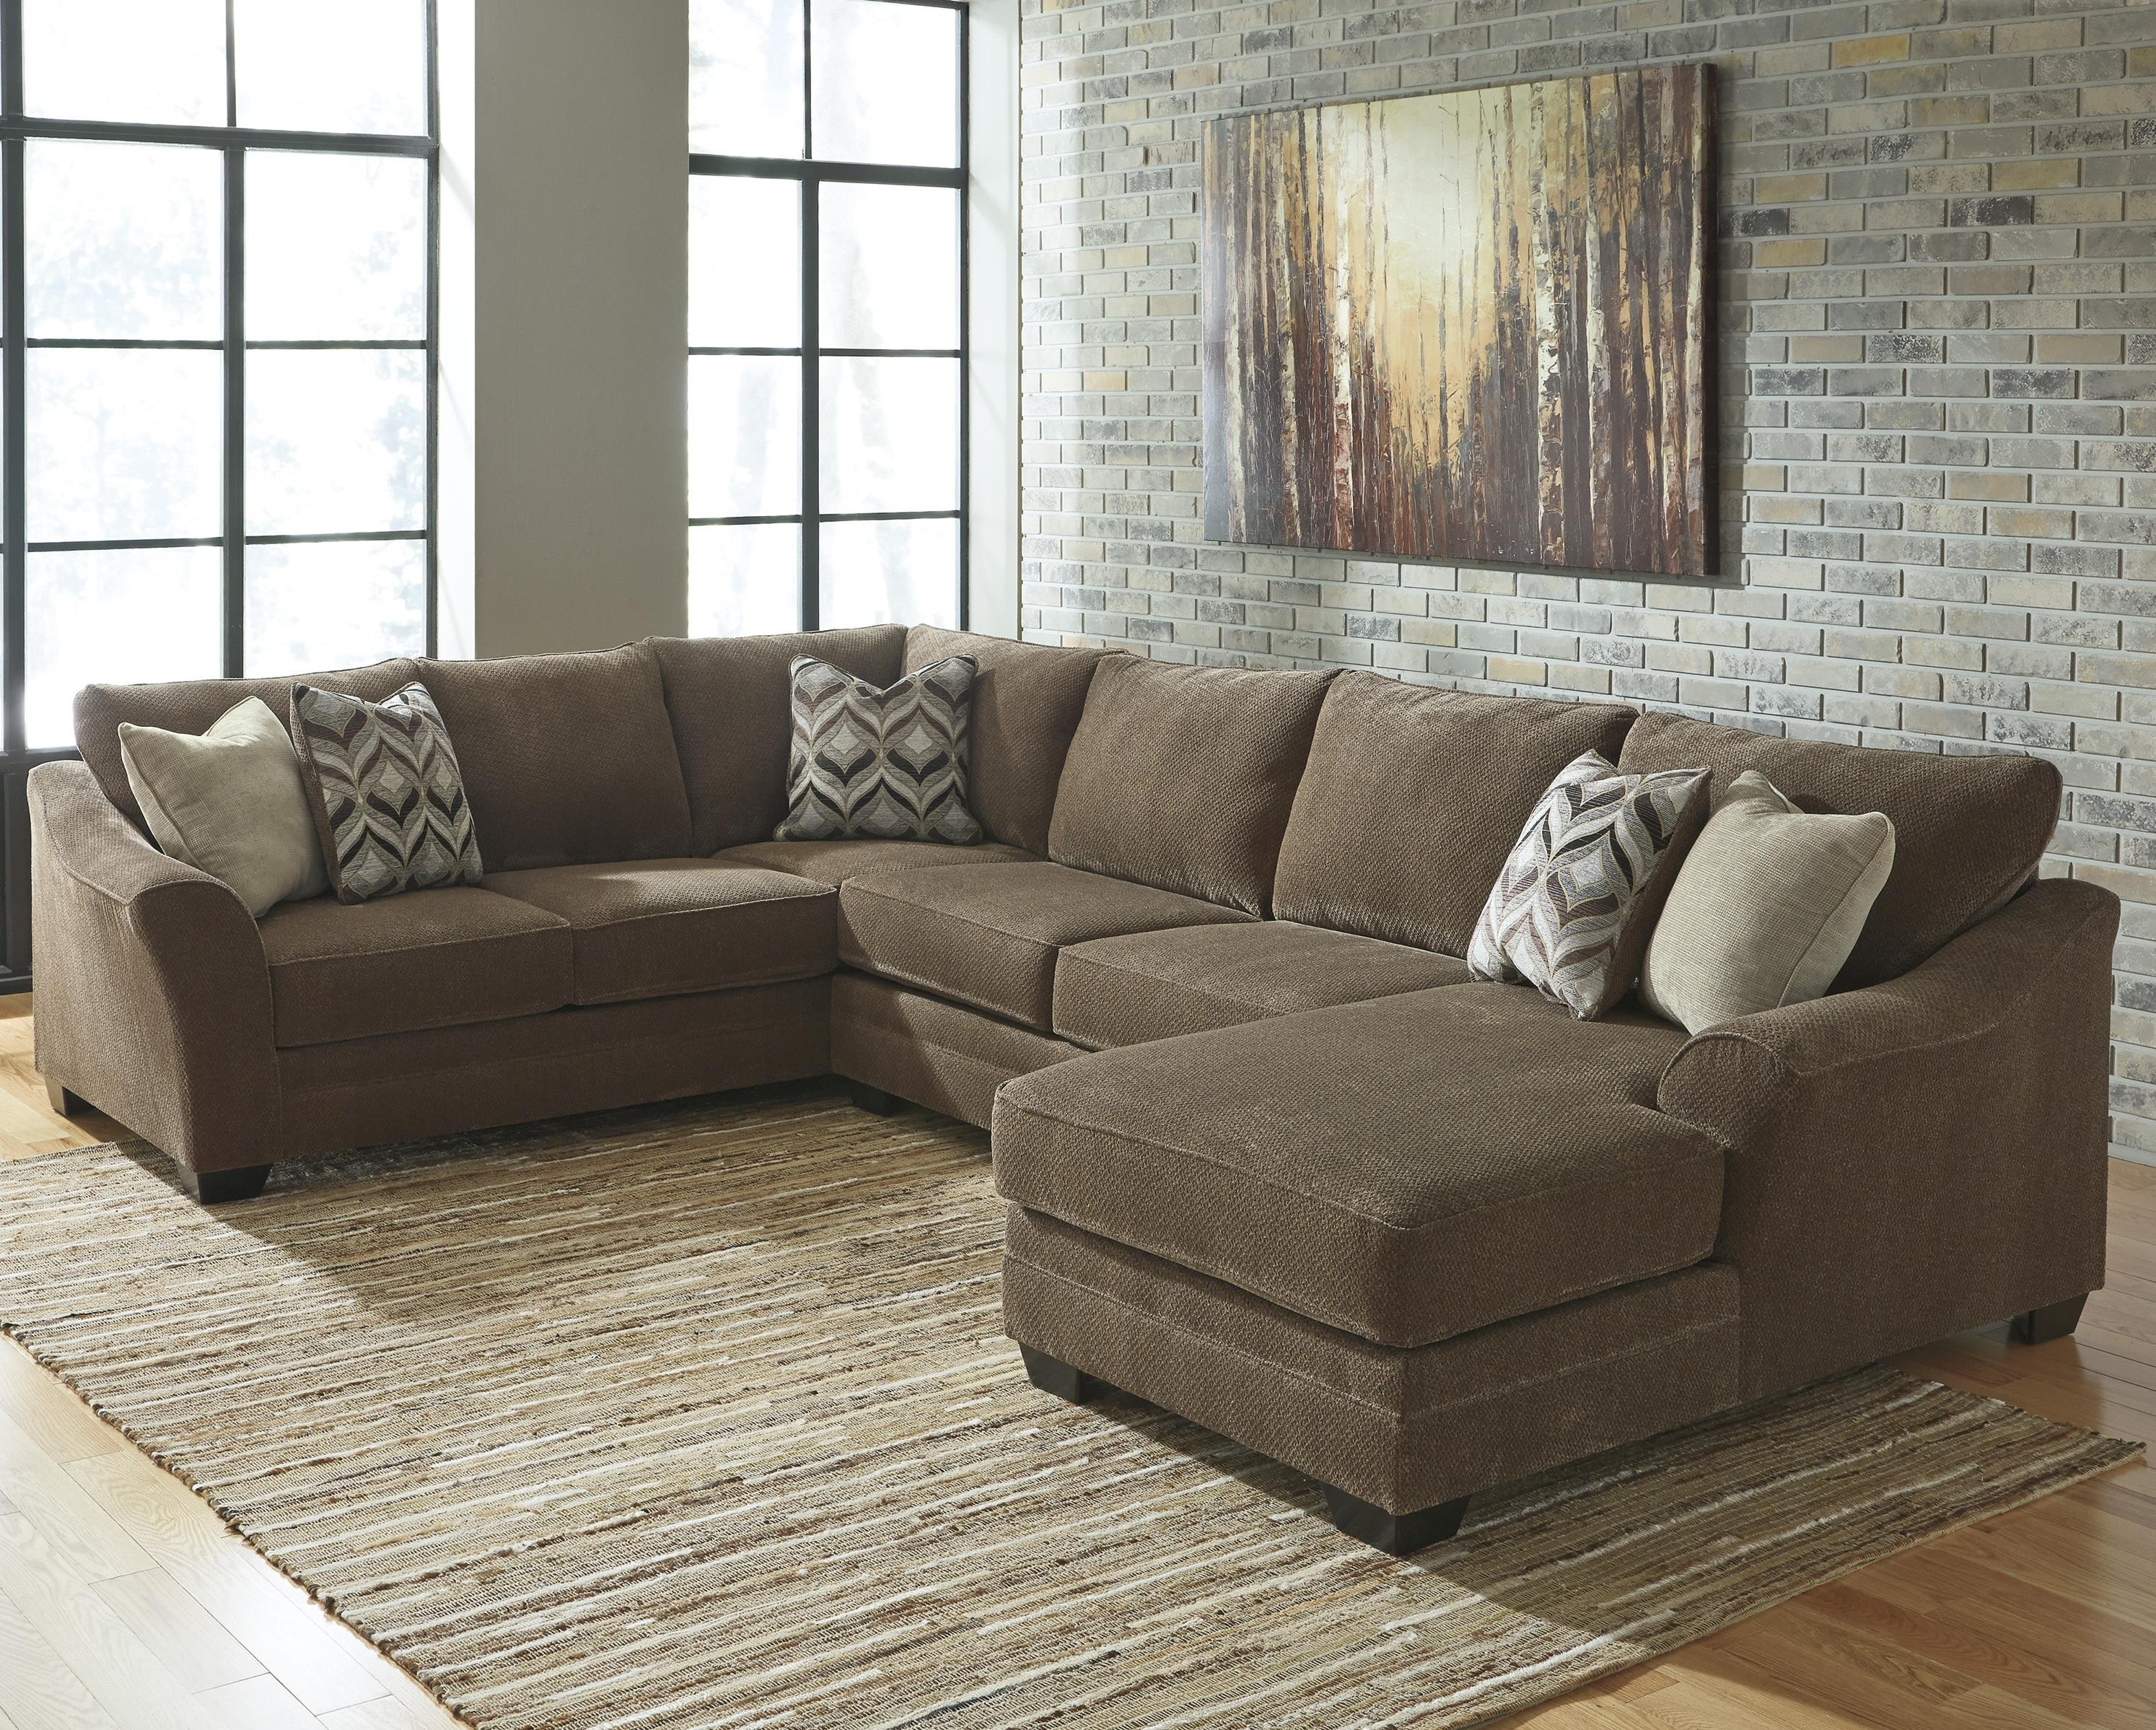 Elegant 3 Piece Microfiber Sectional Sofa   Buildsimplehome Within Sierra Down 3 Piece Sectionals With Laf Chaise (Photo 13 of 30)